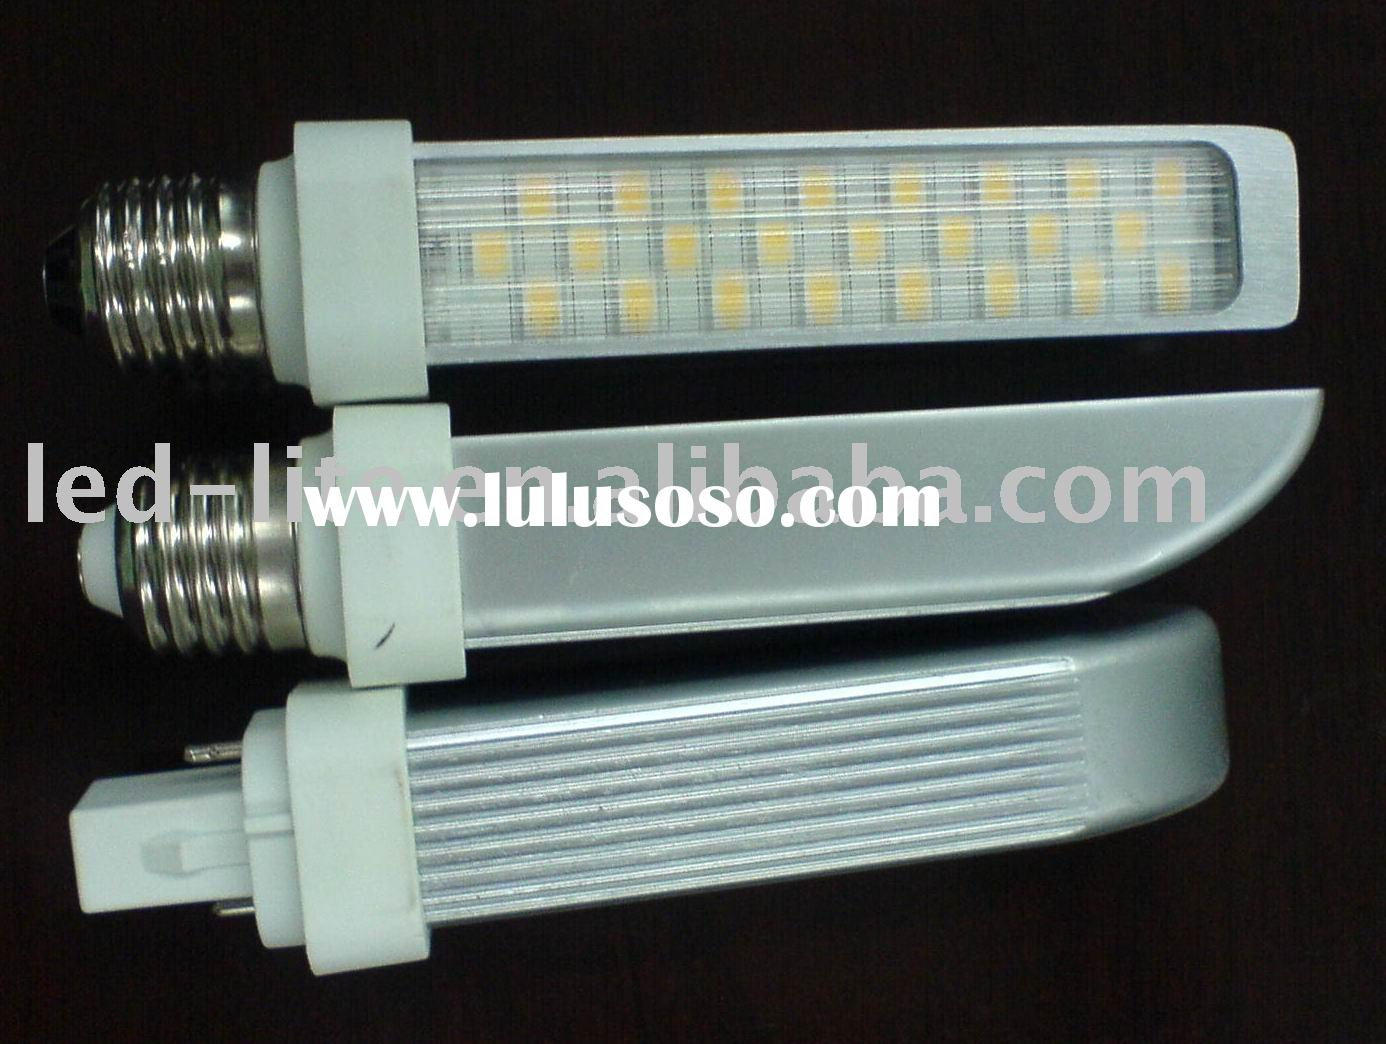 new SMD LED PL lamp/high lumen SMD/3528/5050/Patented LED corn bulb,new corn bulbs